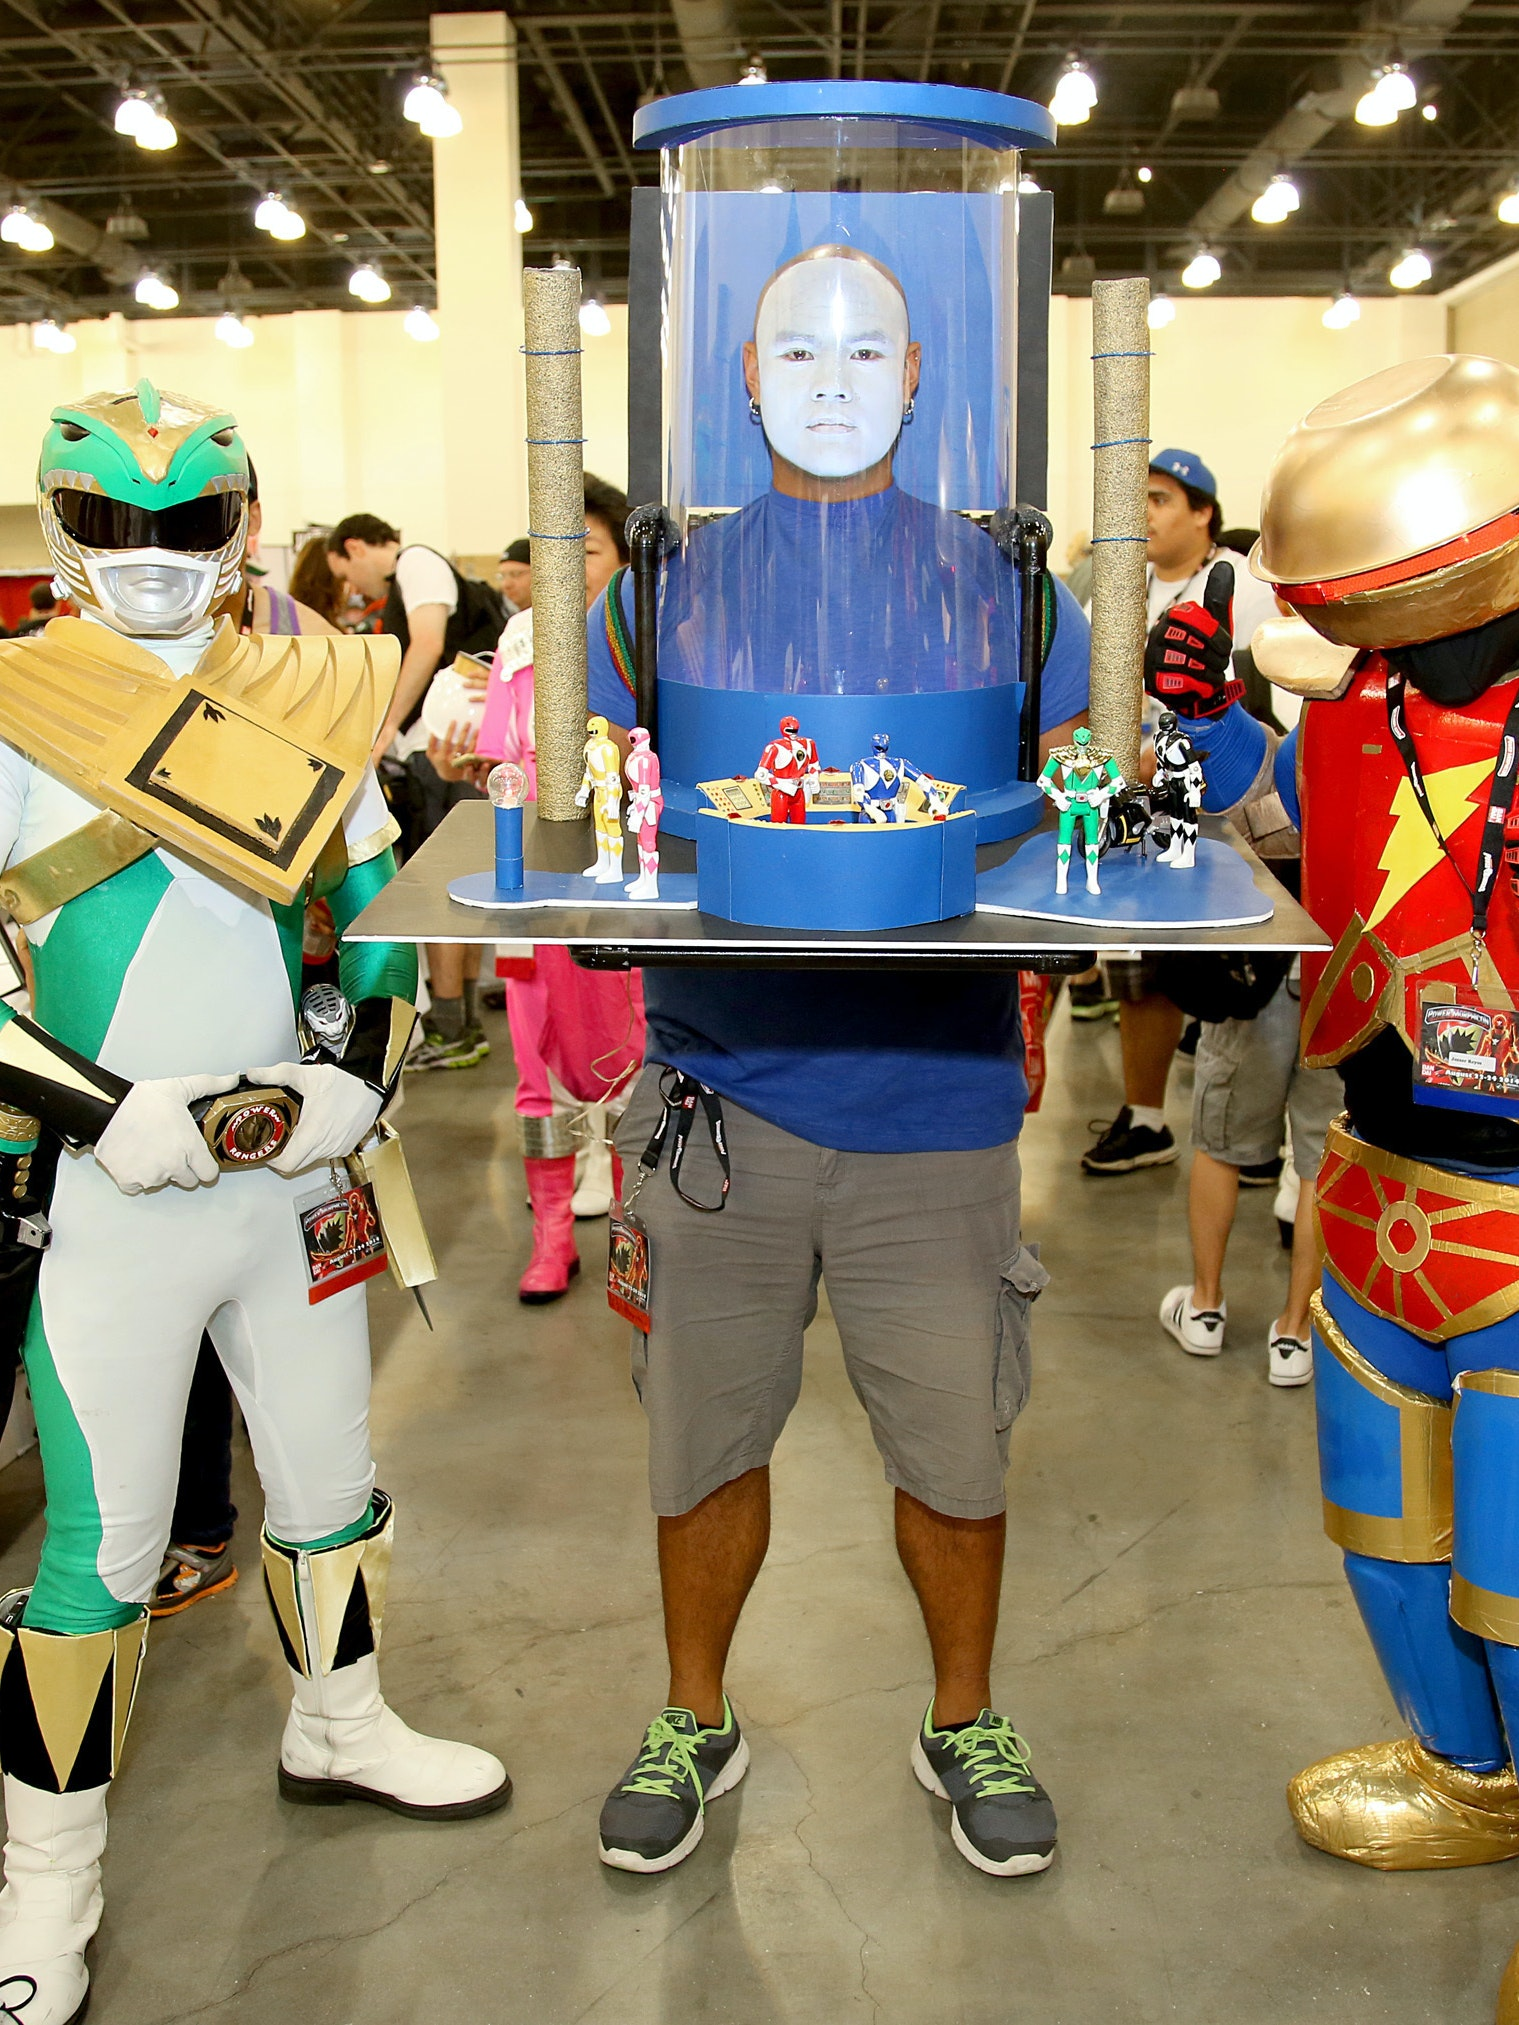 PASADENA, CA - AUGUST 23: Three dedicated Power Rangers fans attended Power Morphicon today and dressed up as the legendary Tommy Oliver, Alpha 5 and Zordon in the Command Center from Mighty Morphin Power Rangers on August 23, 2014 in Pasadena, California.  (Photo by Rachel Murray/Getty Images for Saban Brands)